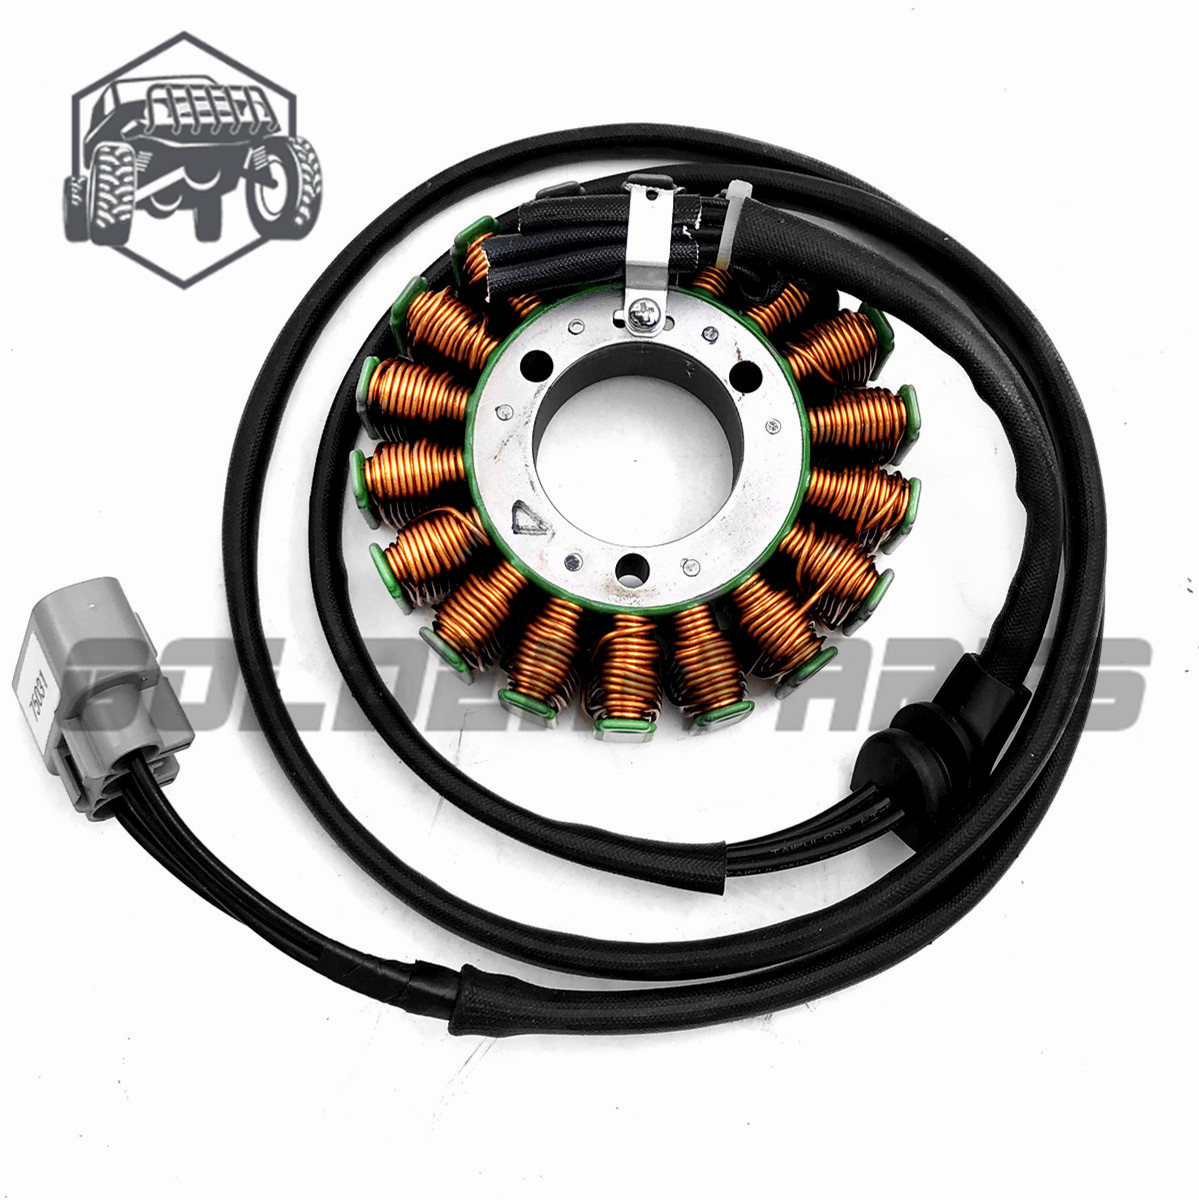 Magneto stator Fit For ODES Liangzi UTV 800 Dominator 21040109702